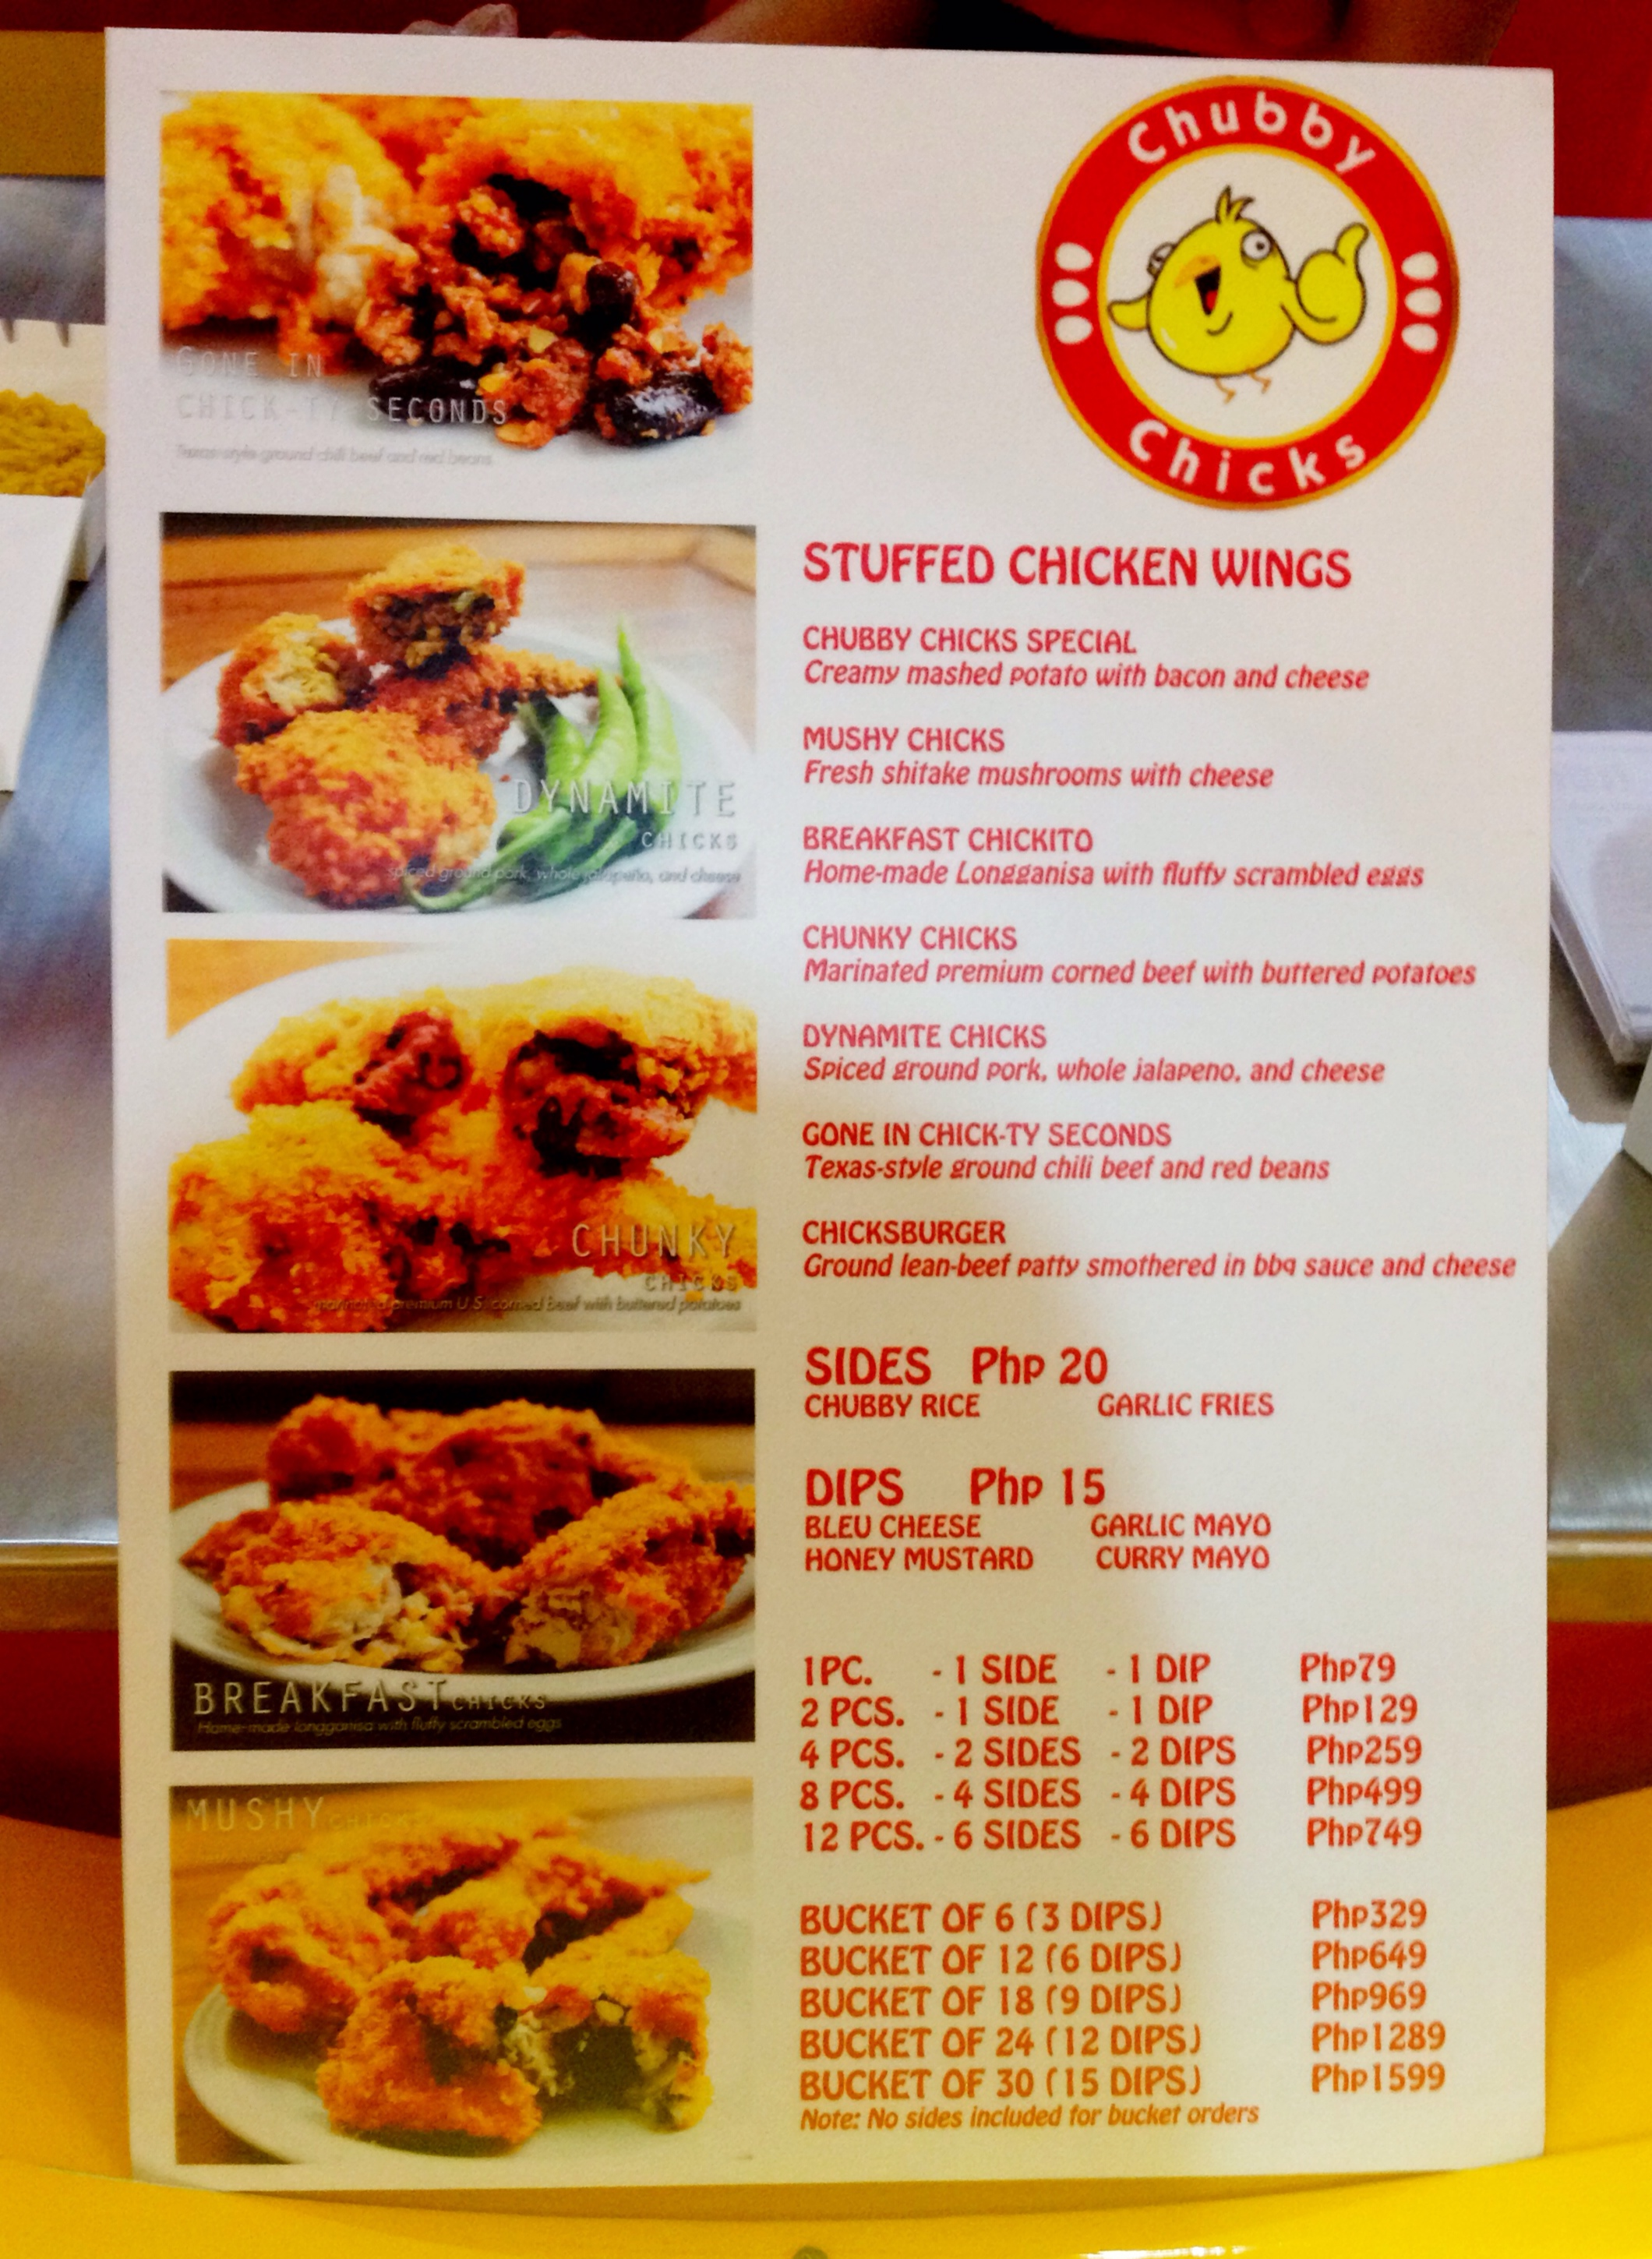 Chubby Chicks Menu